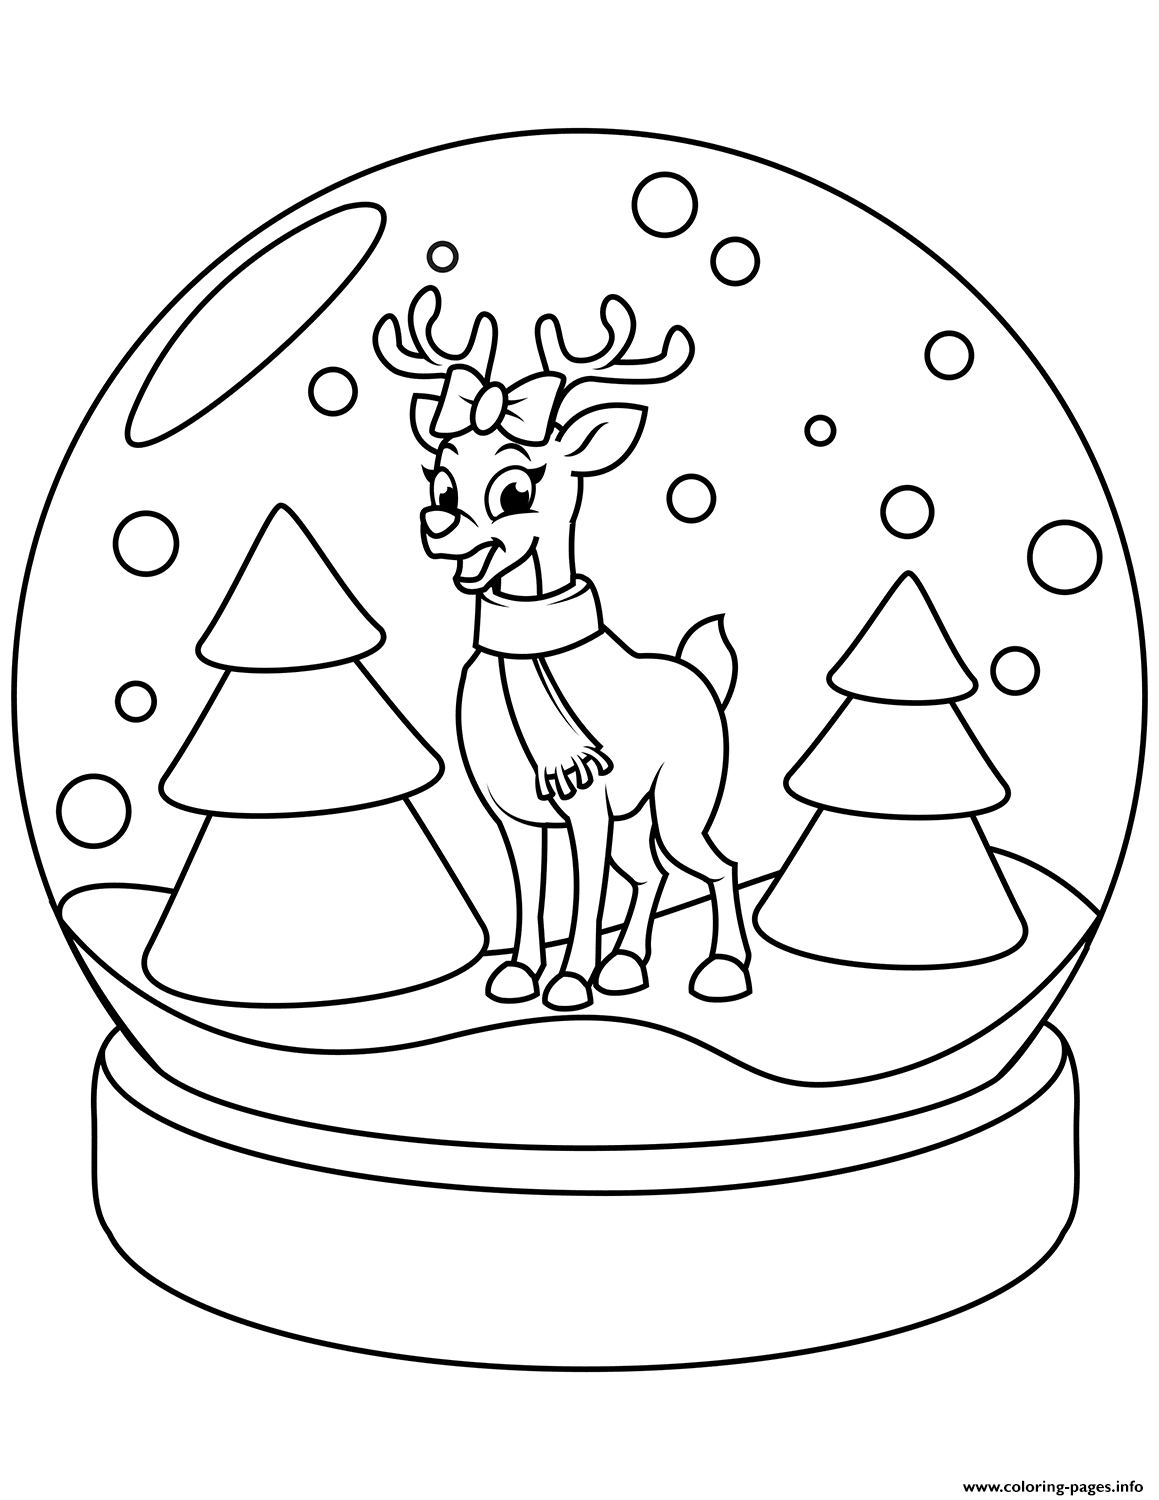 Pin By Nicole Allen On Sub Worksheets Rudolph Coloring Pages Christmas Snow Globes Printable Christmas Coloring Pages